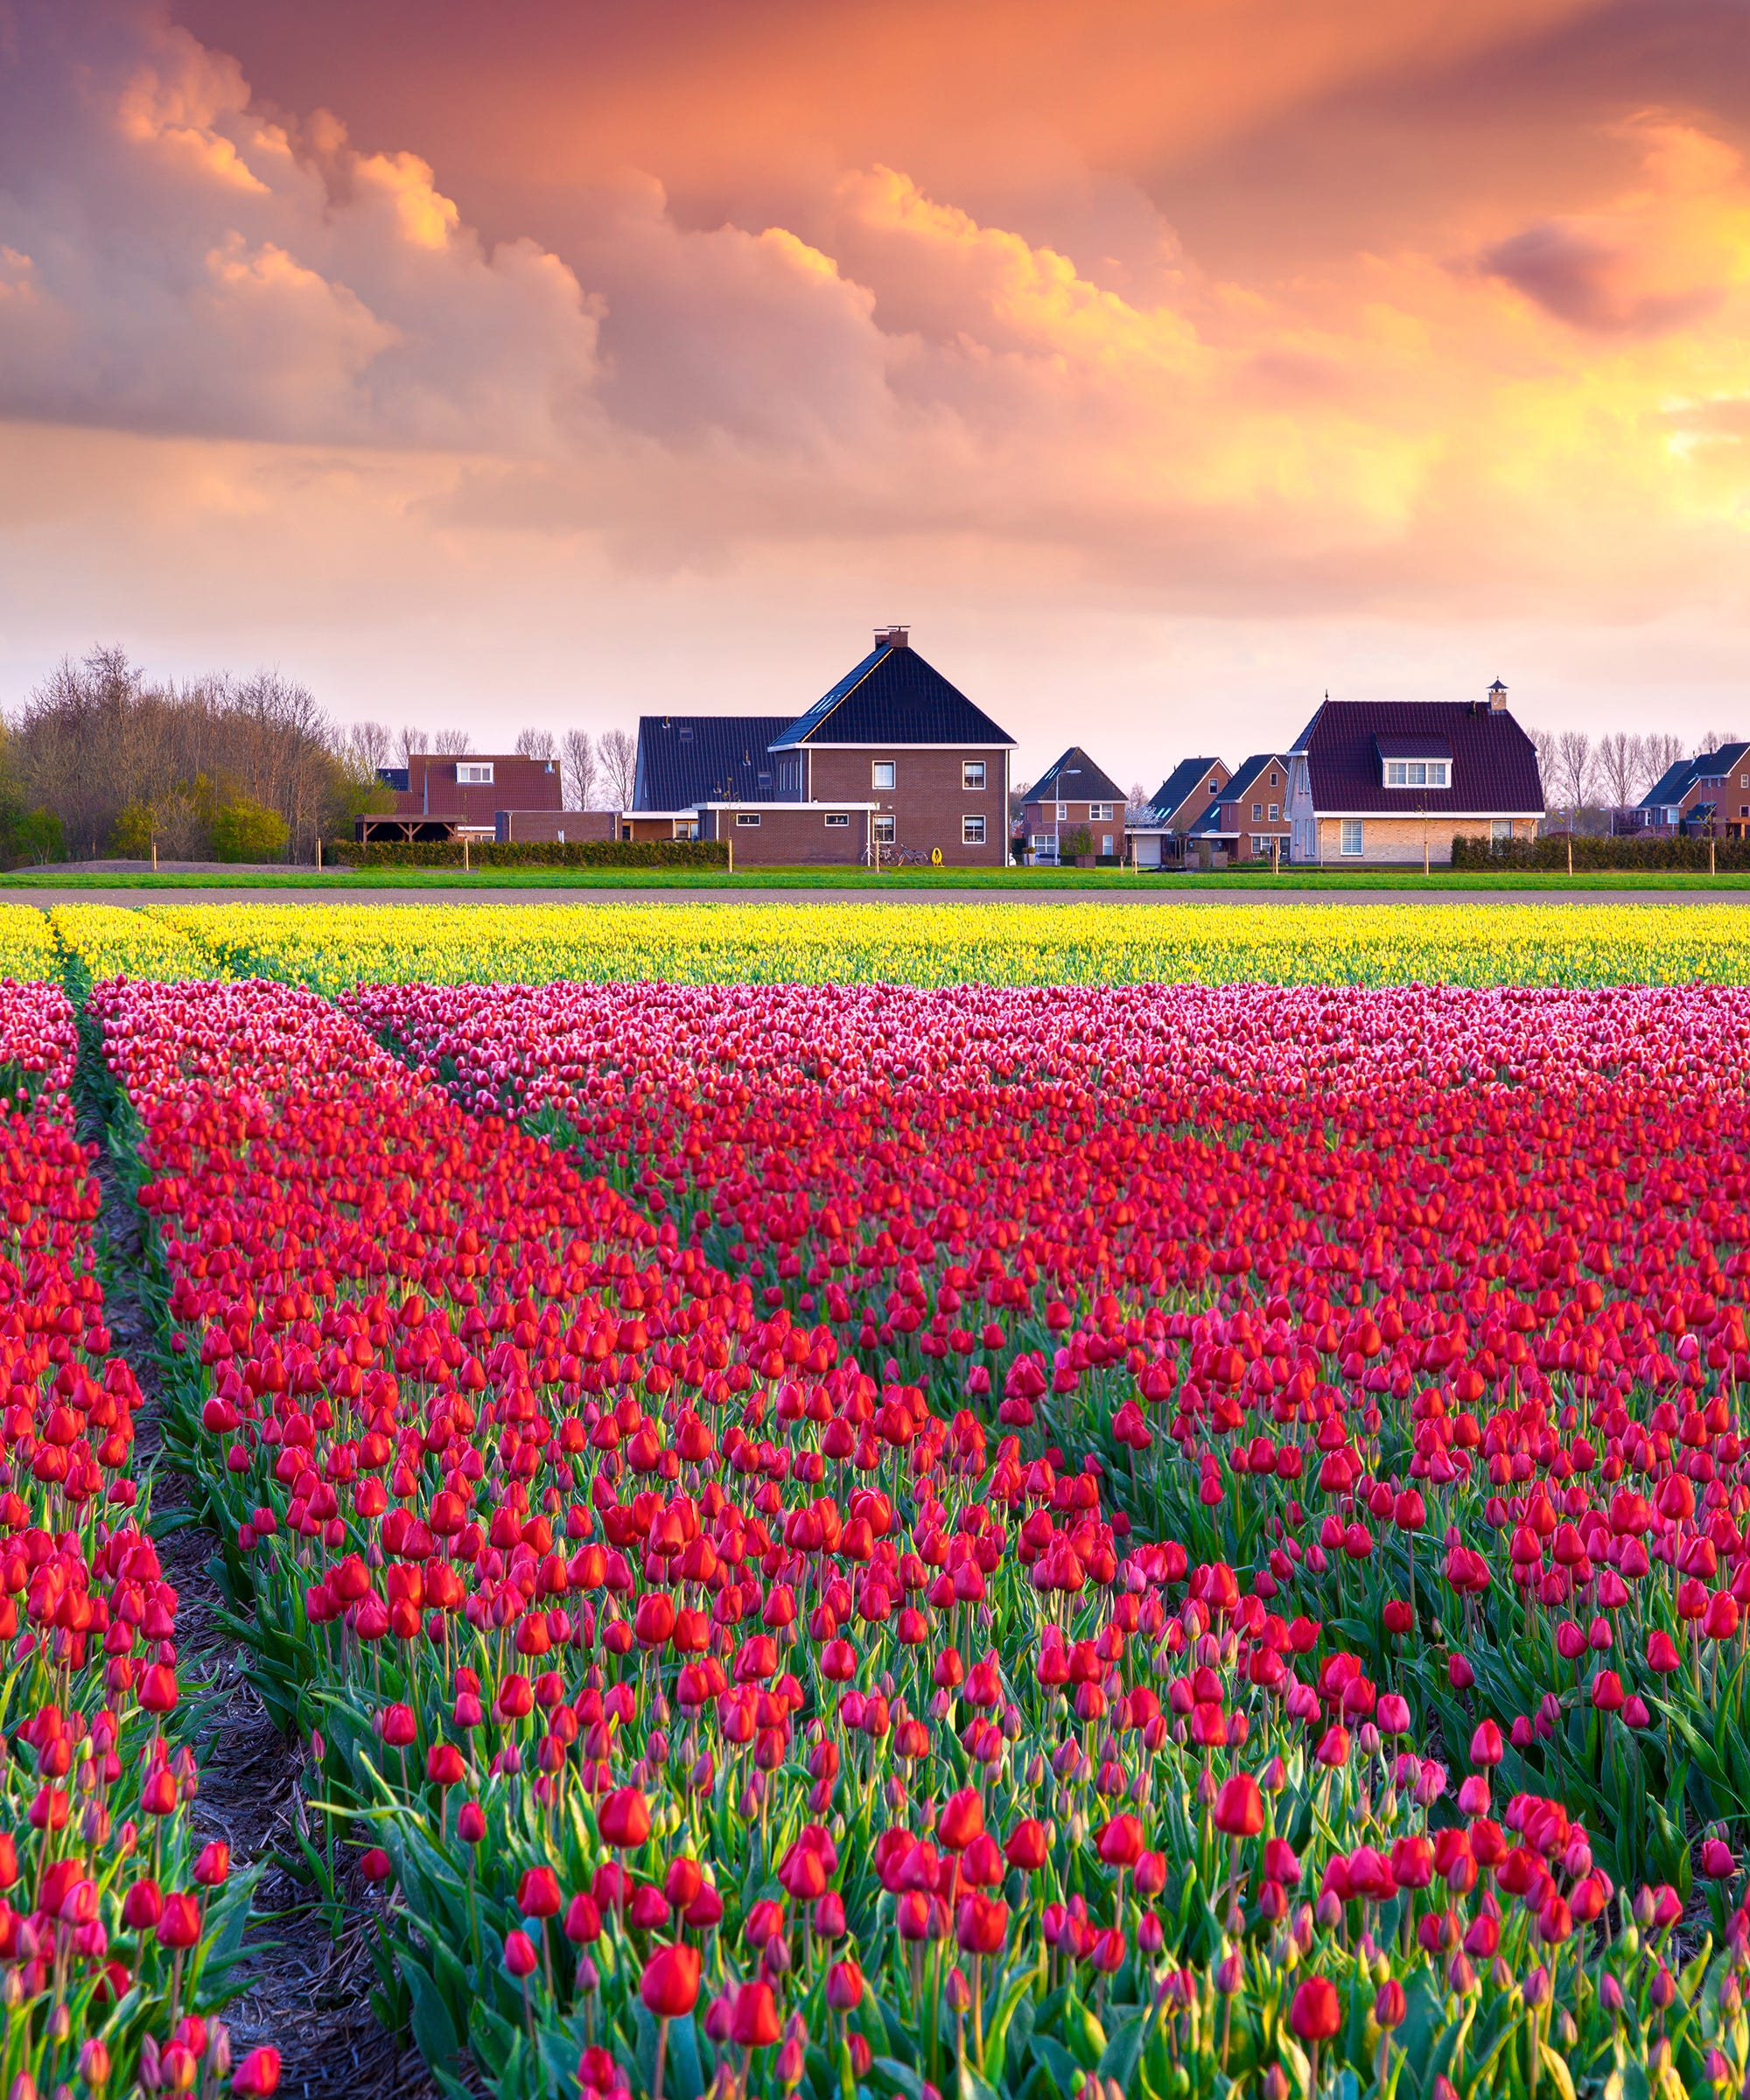 Will Instagramming Tourists Destroy These Dutch Tulip Fields, Too?